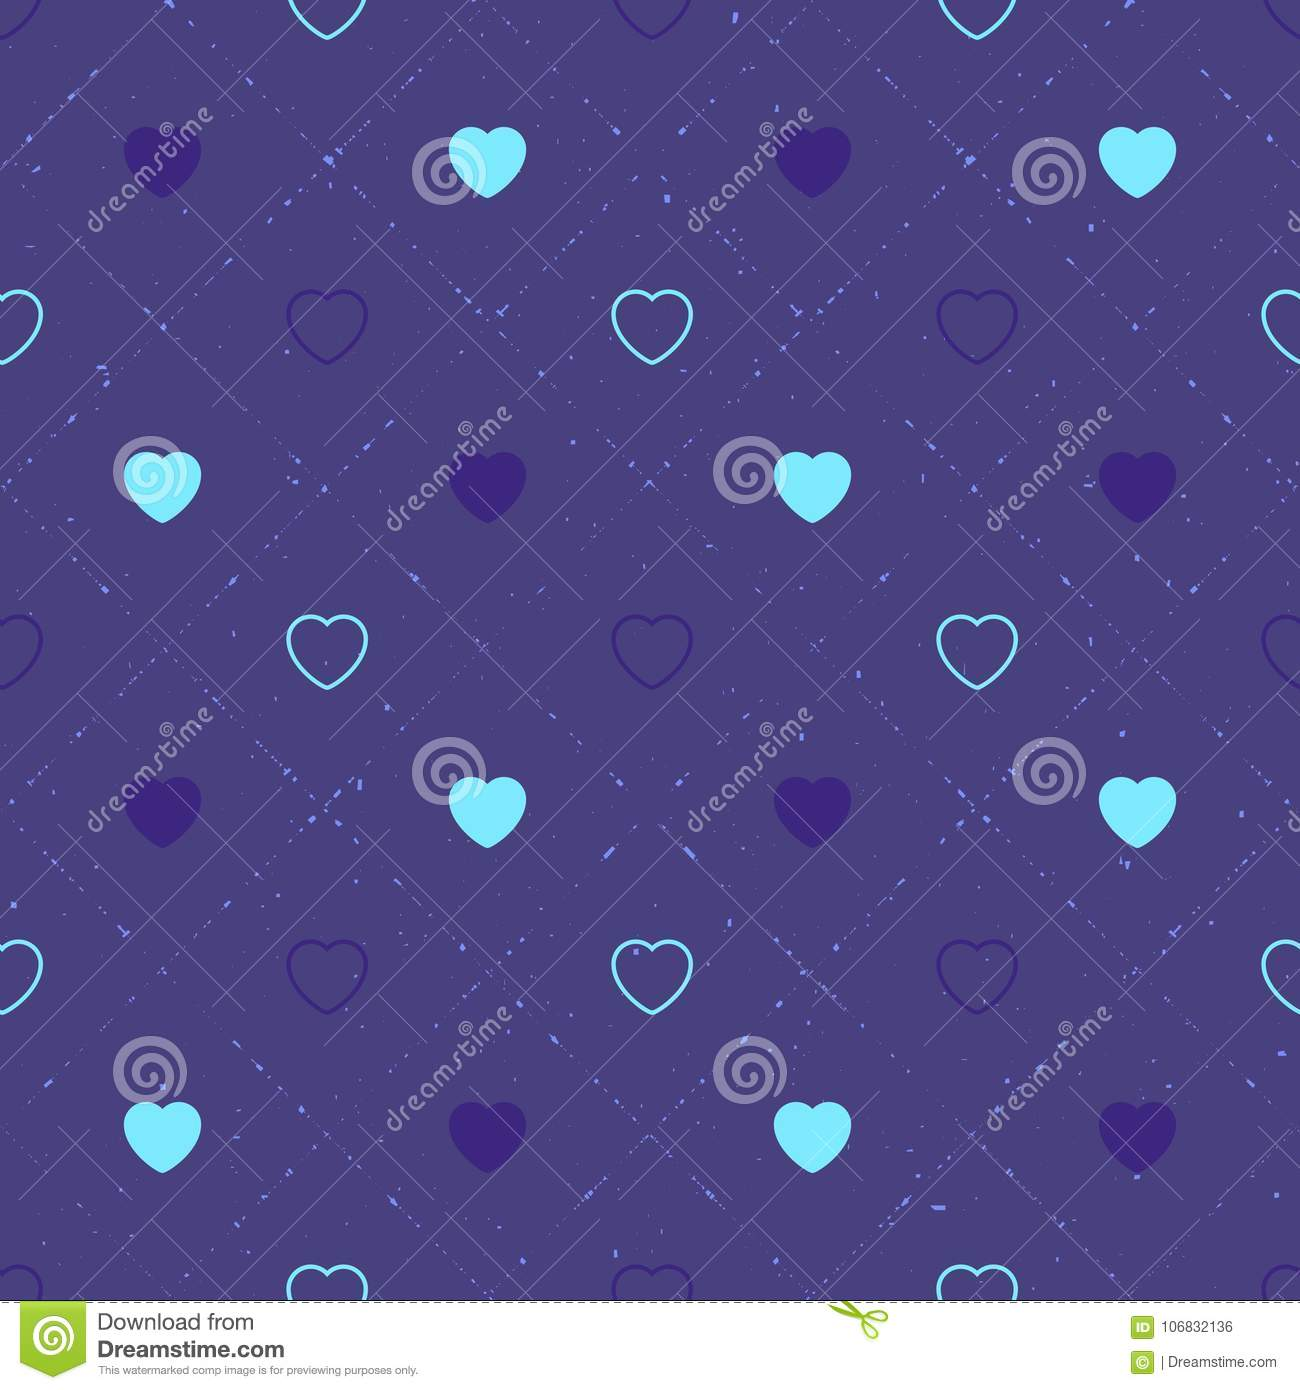 Abstract seamless pattern with hearts. Valetines day, birthday or girlish design